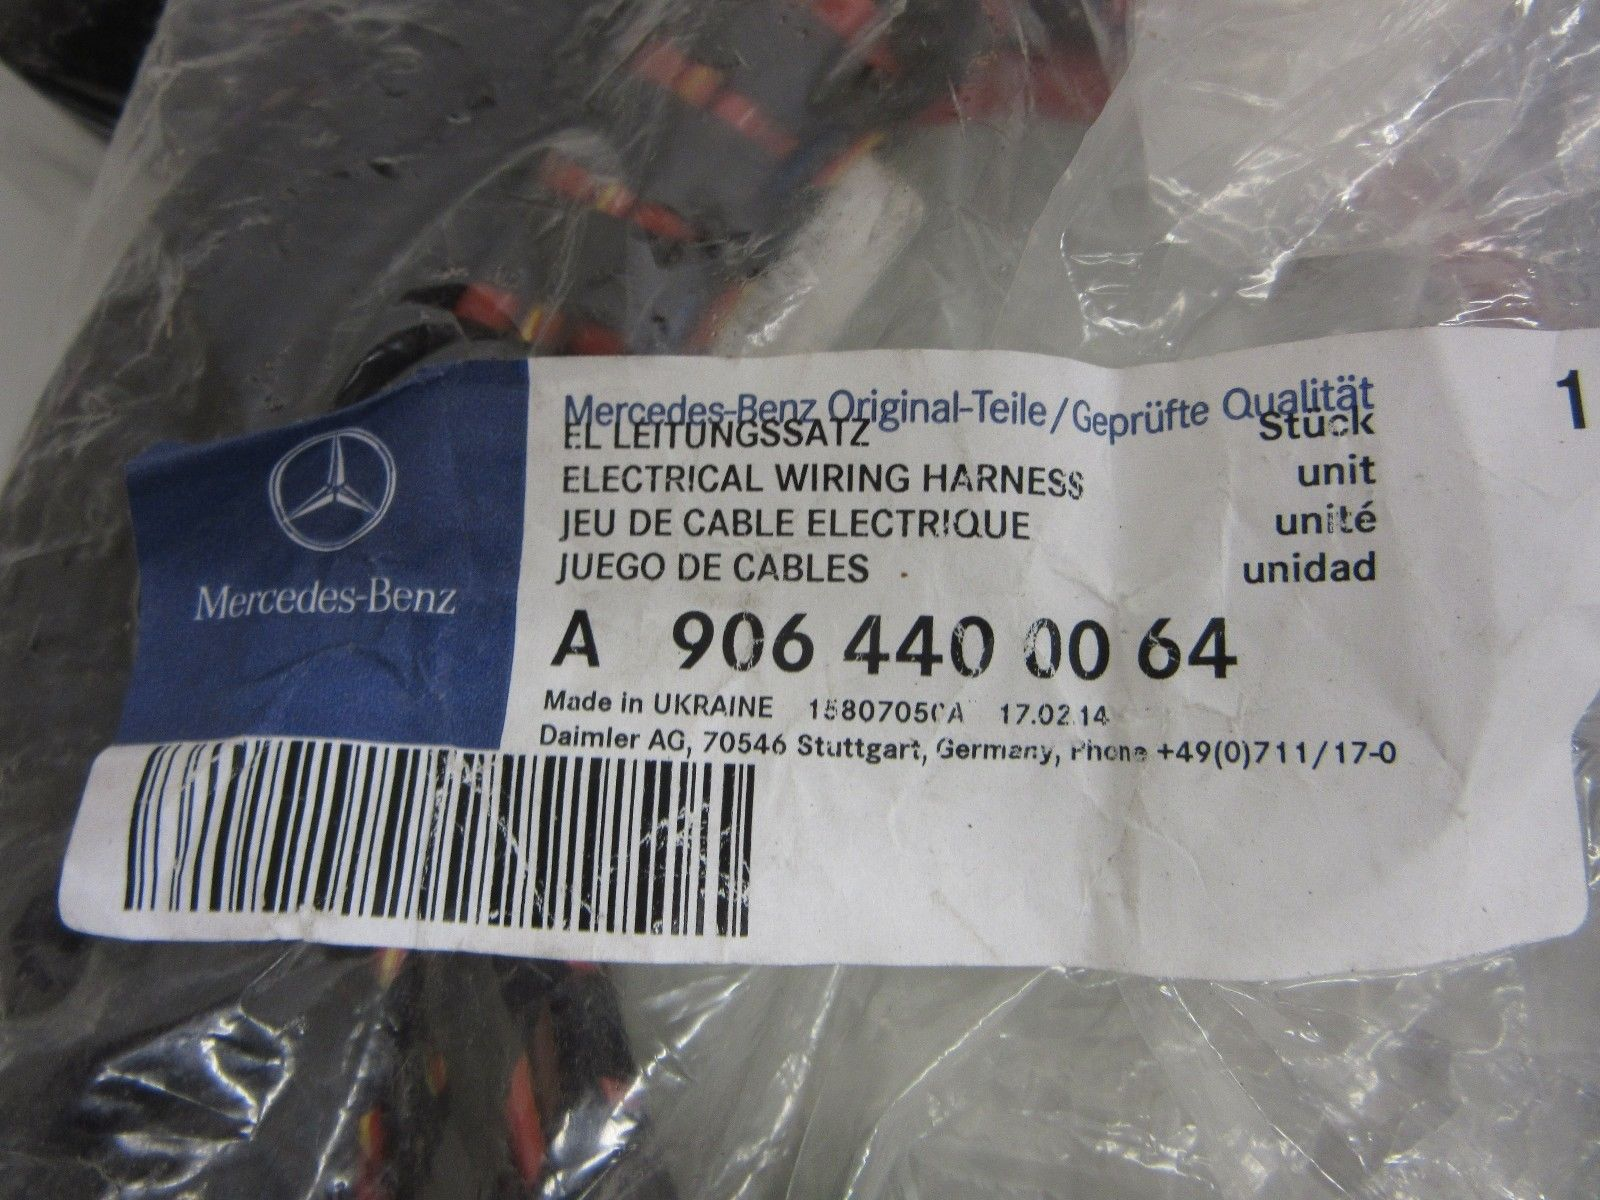 hight resolution of new oem mercedes sprinter 906 rear hitch electrical wiring harness 9064400064 9064400064